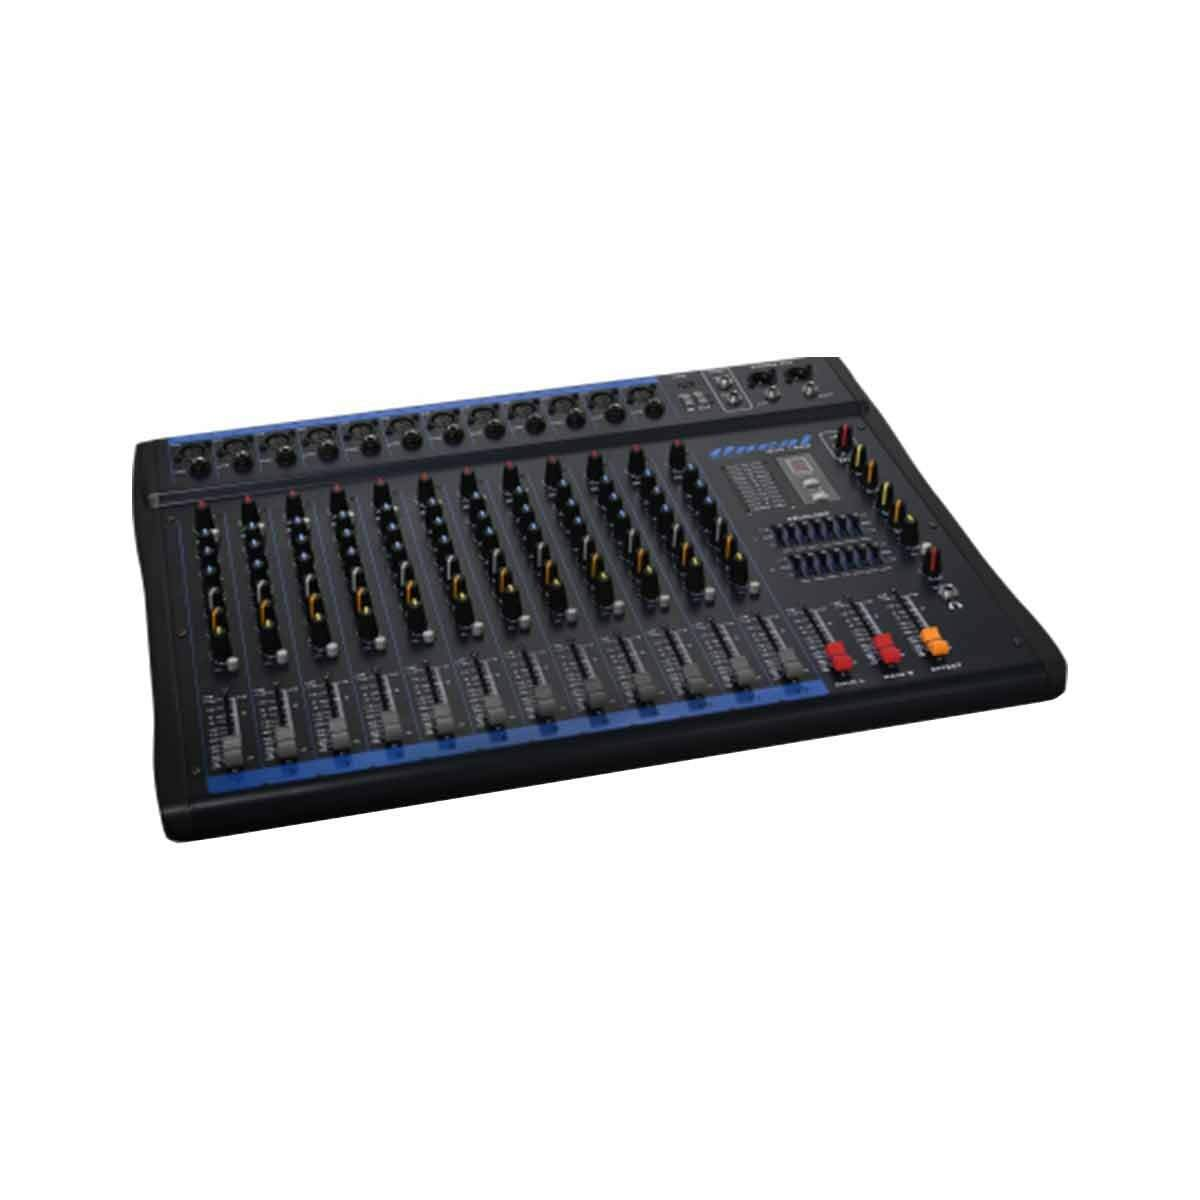 Mesa  Oneal OMX1202